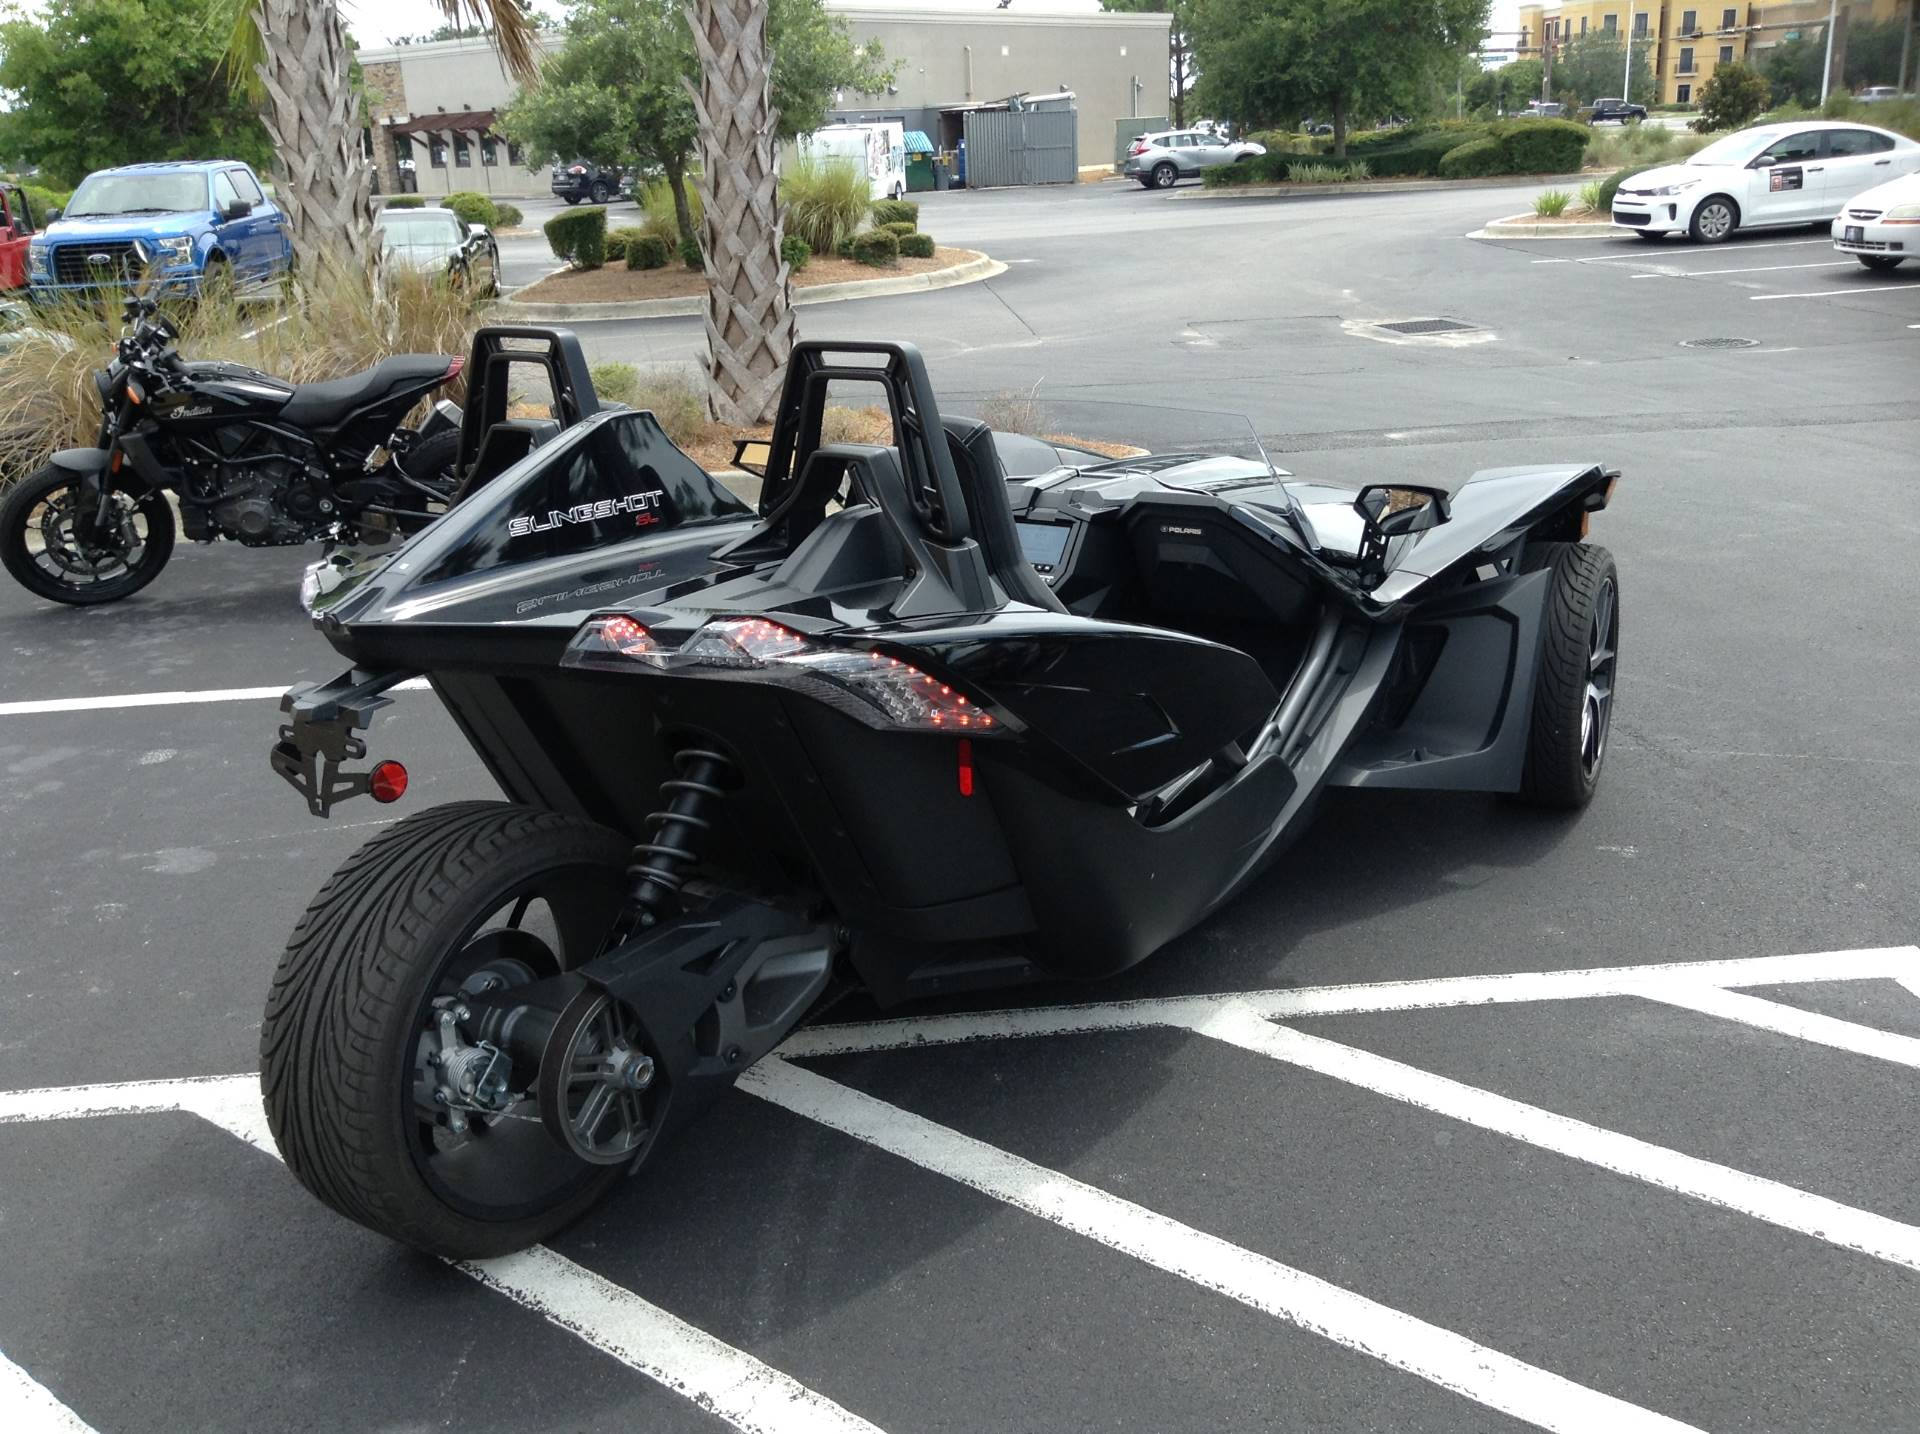 2019 Polaris SLINGSHOT SL in Panama City Beach, Florida - Photo 6